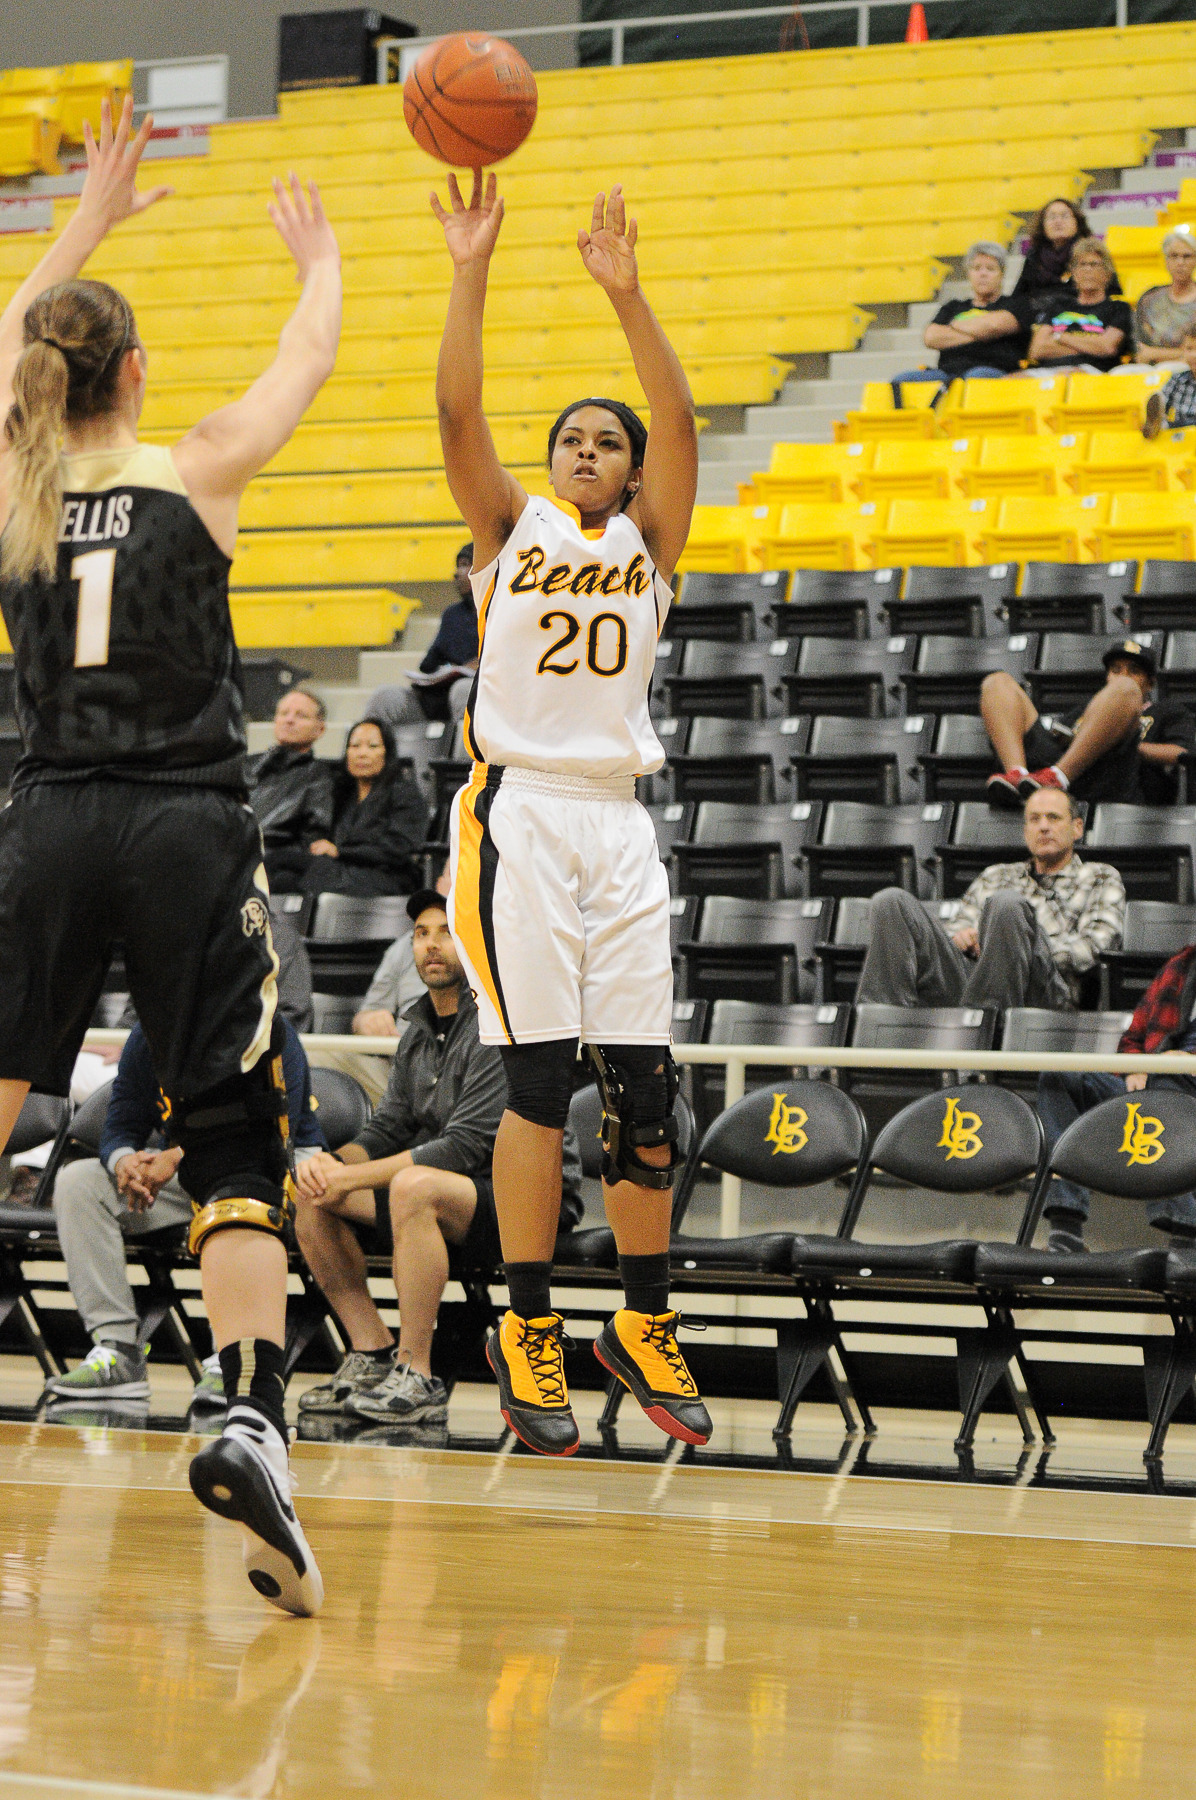 Junior Raven Benton went 5-for-7 from 3-point range and finished with a team-high 17 points.